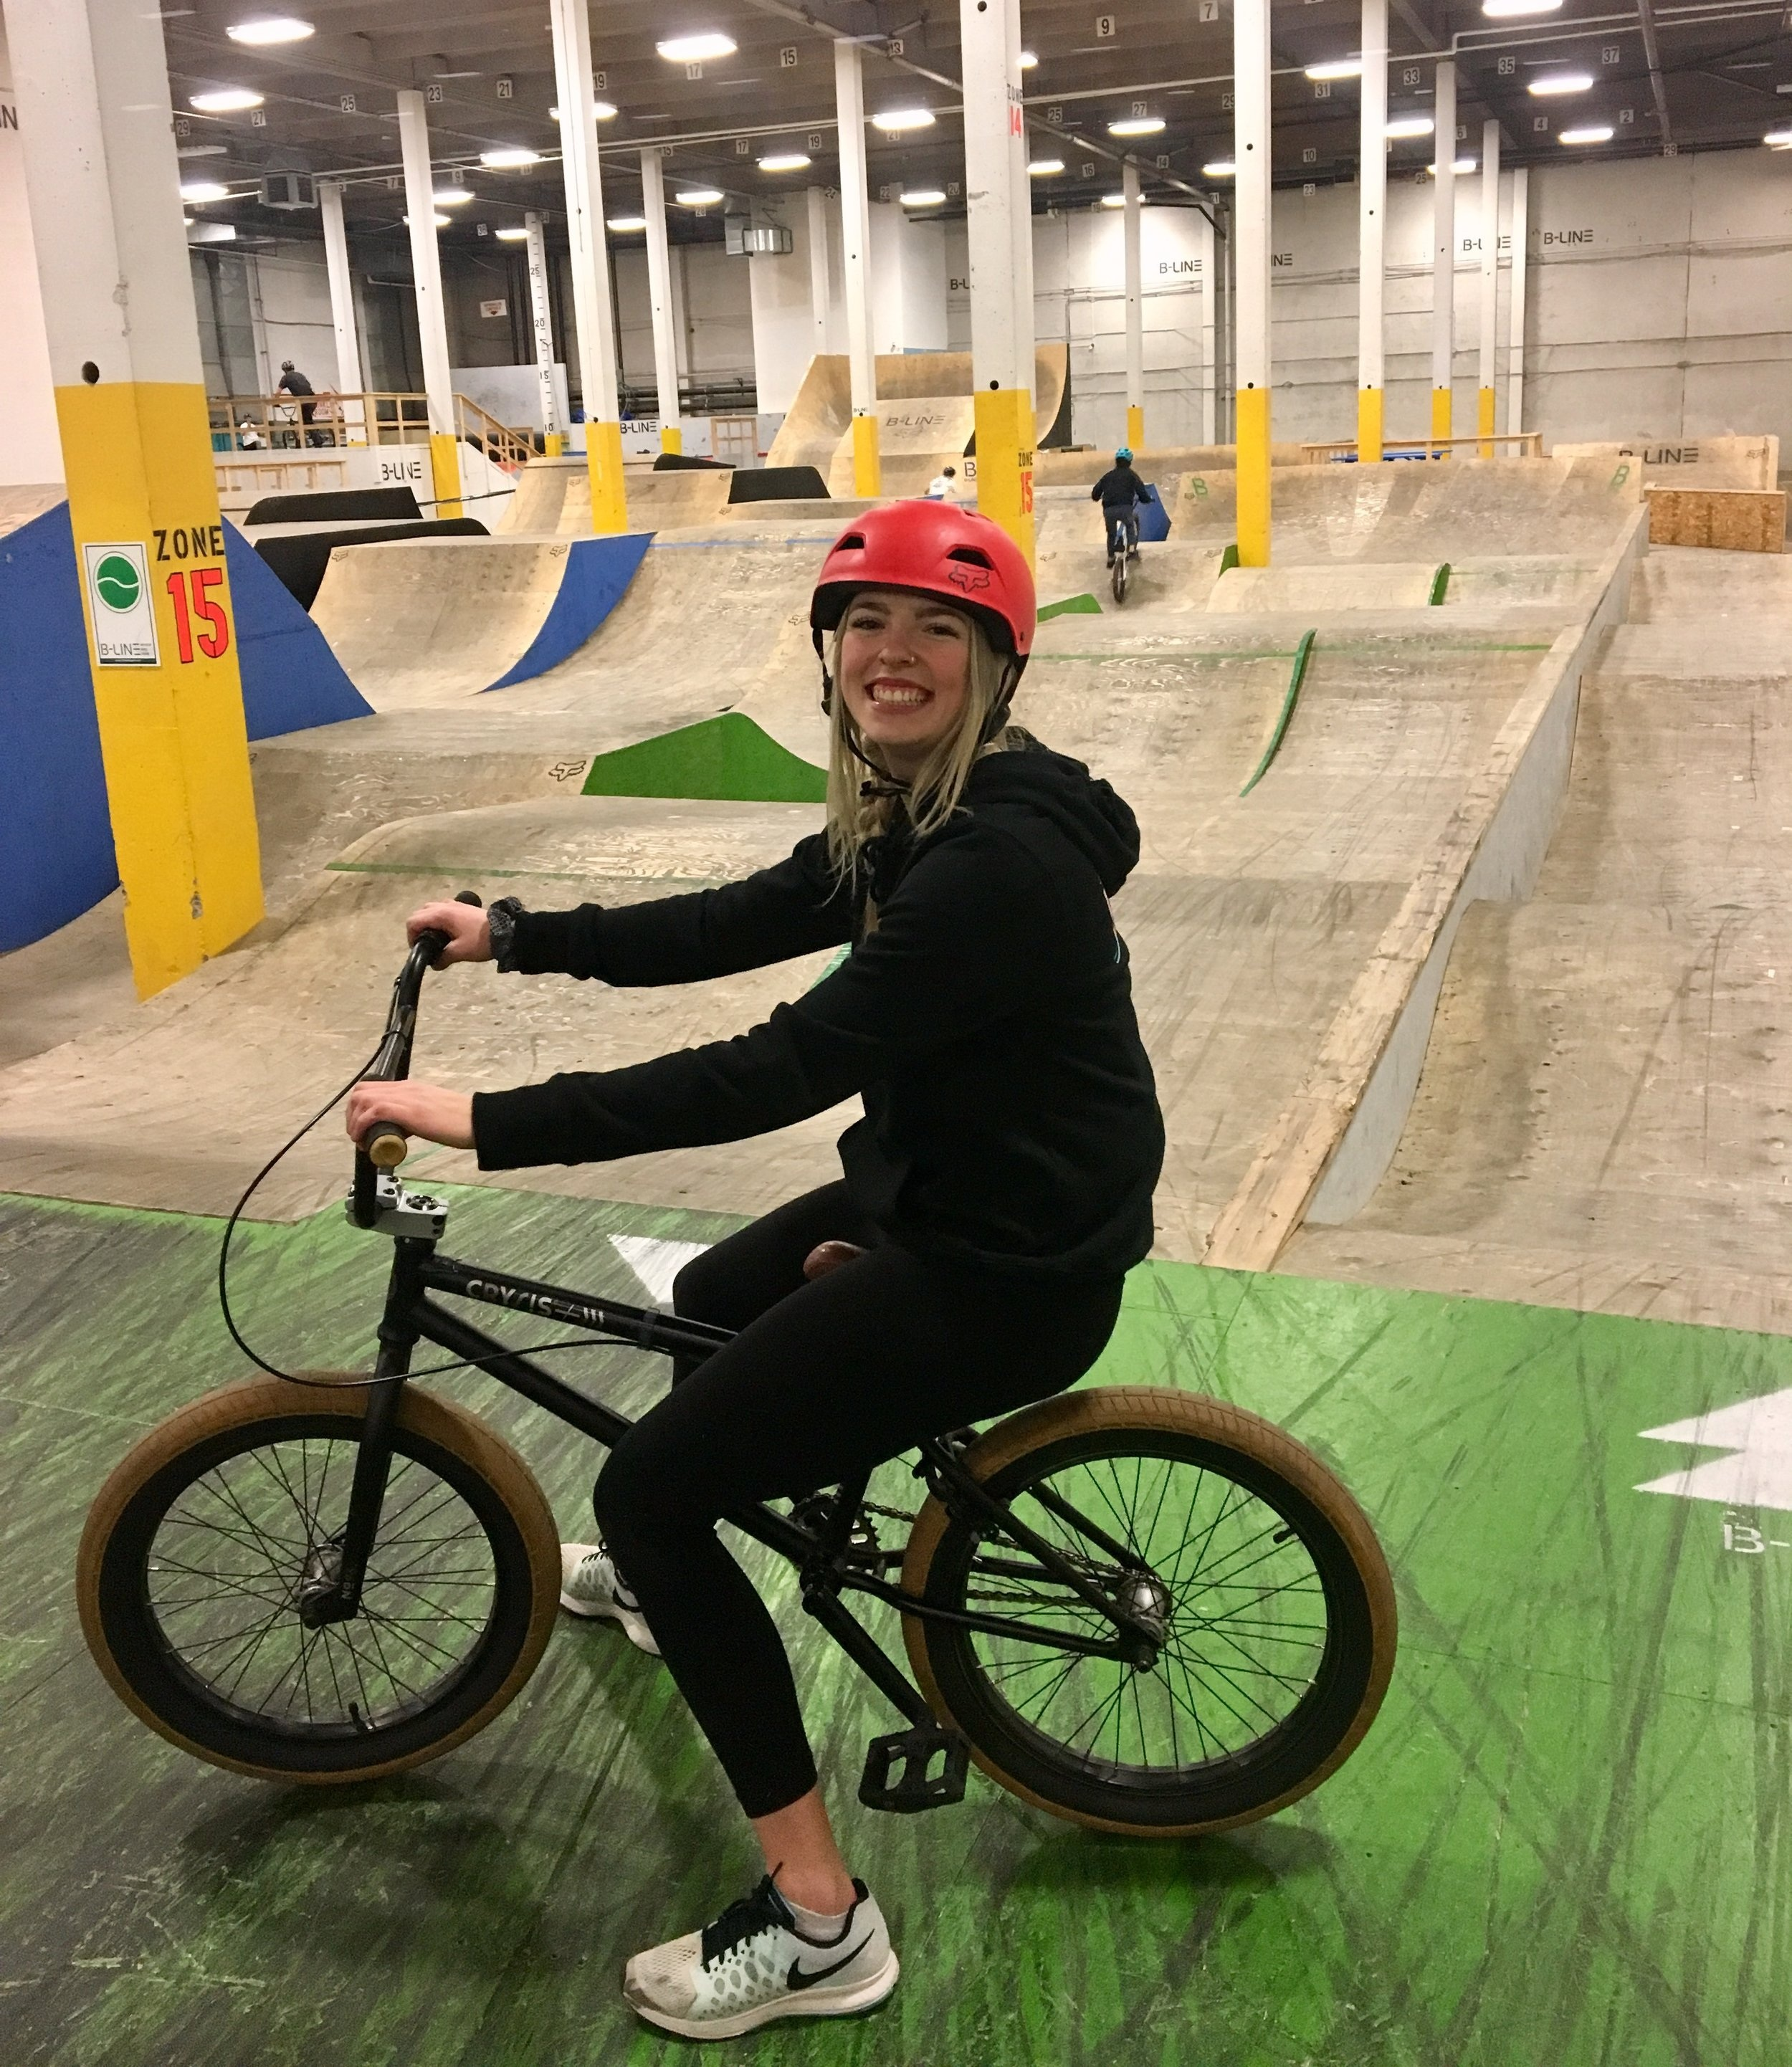 Angela (me) with her sweet BMX rental at B-LINE